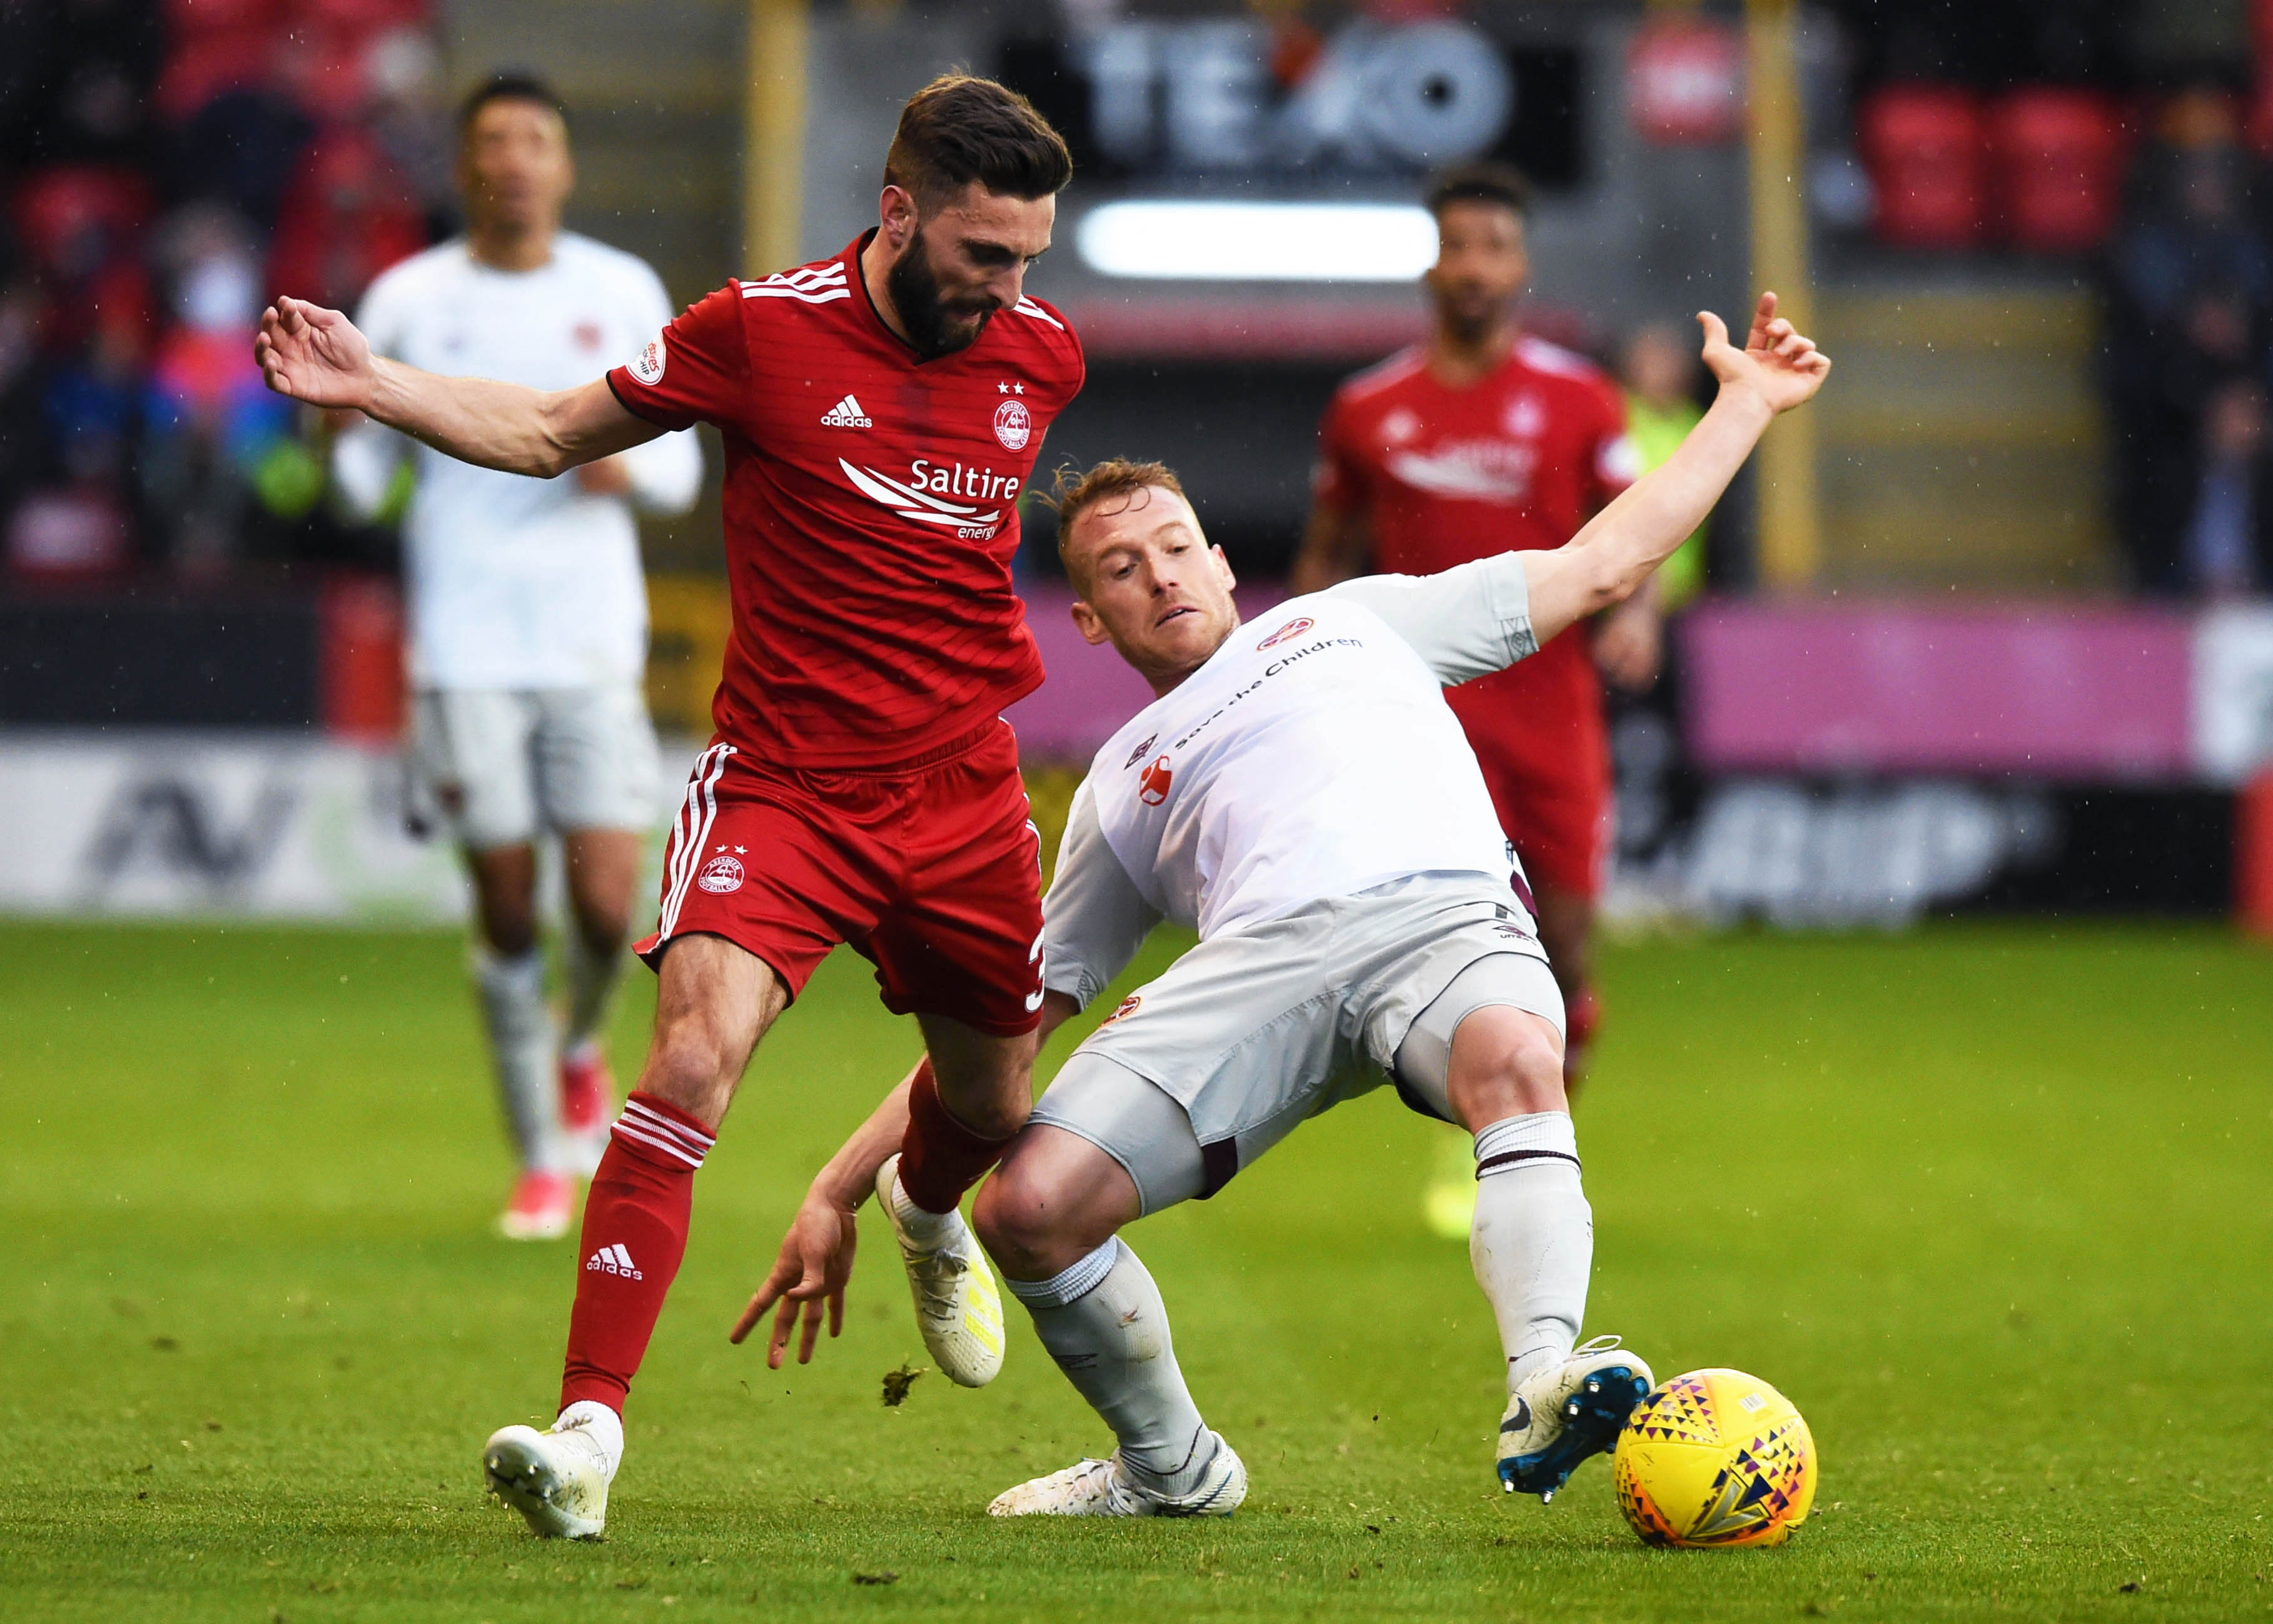 Graeme Shinnie's departure could leave Ferguson as the main man in the Reds' midfield.